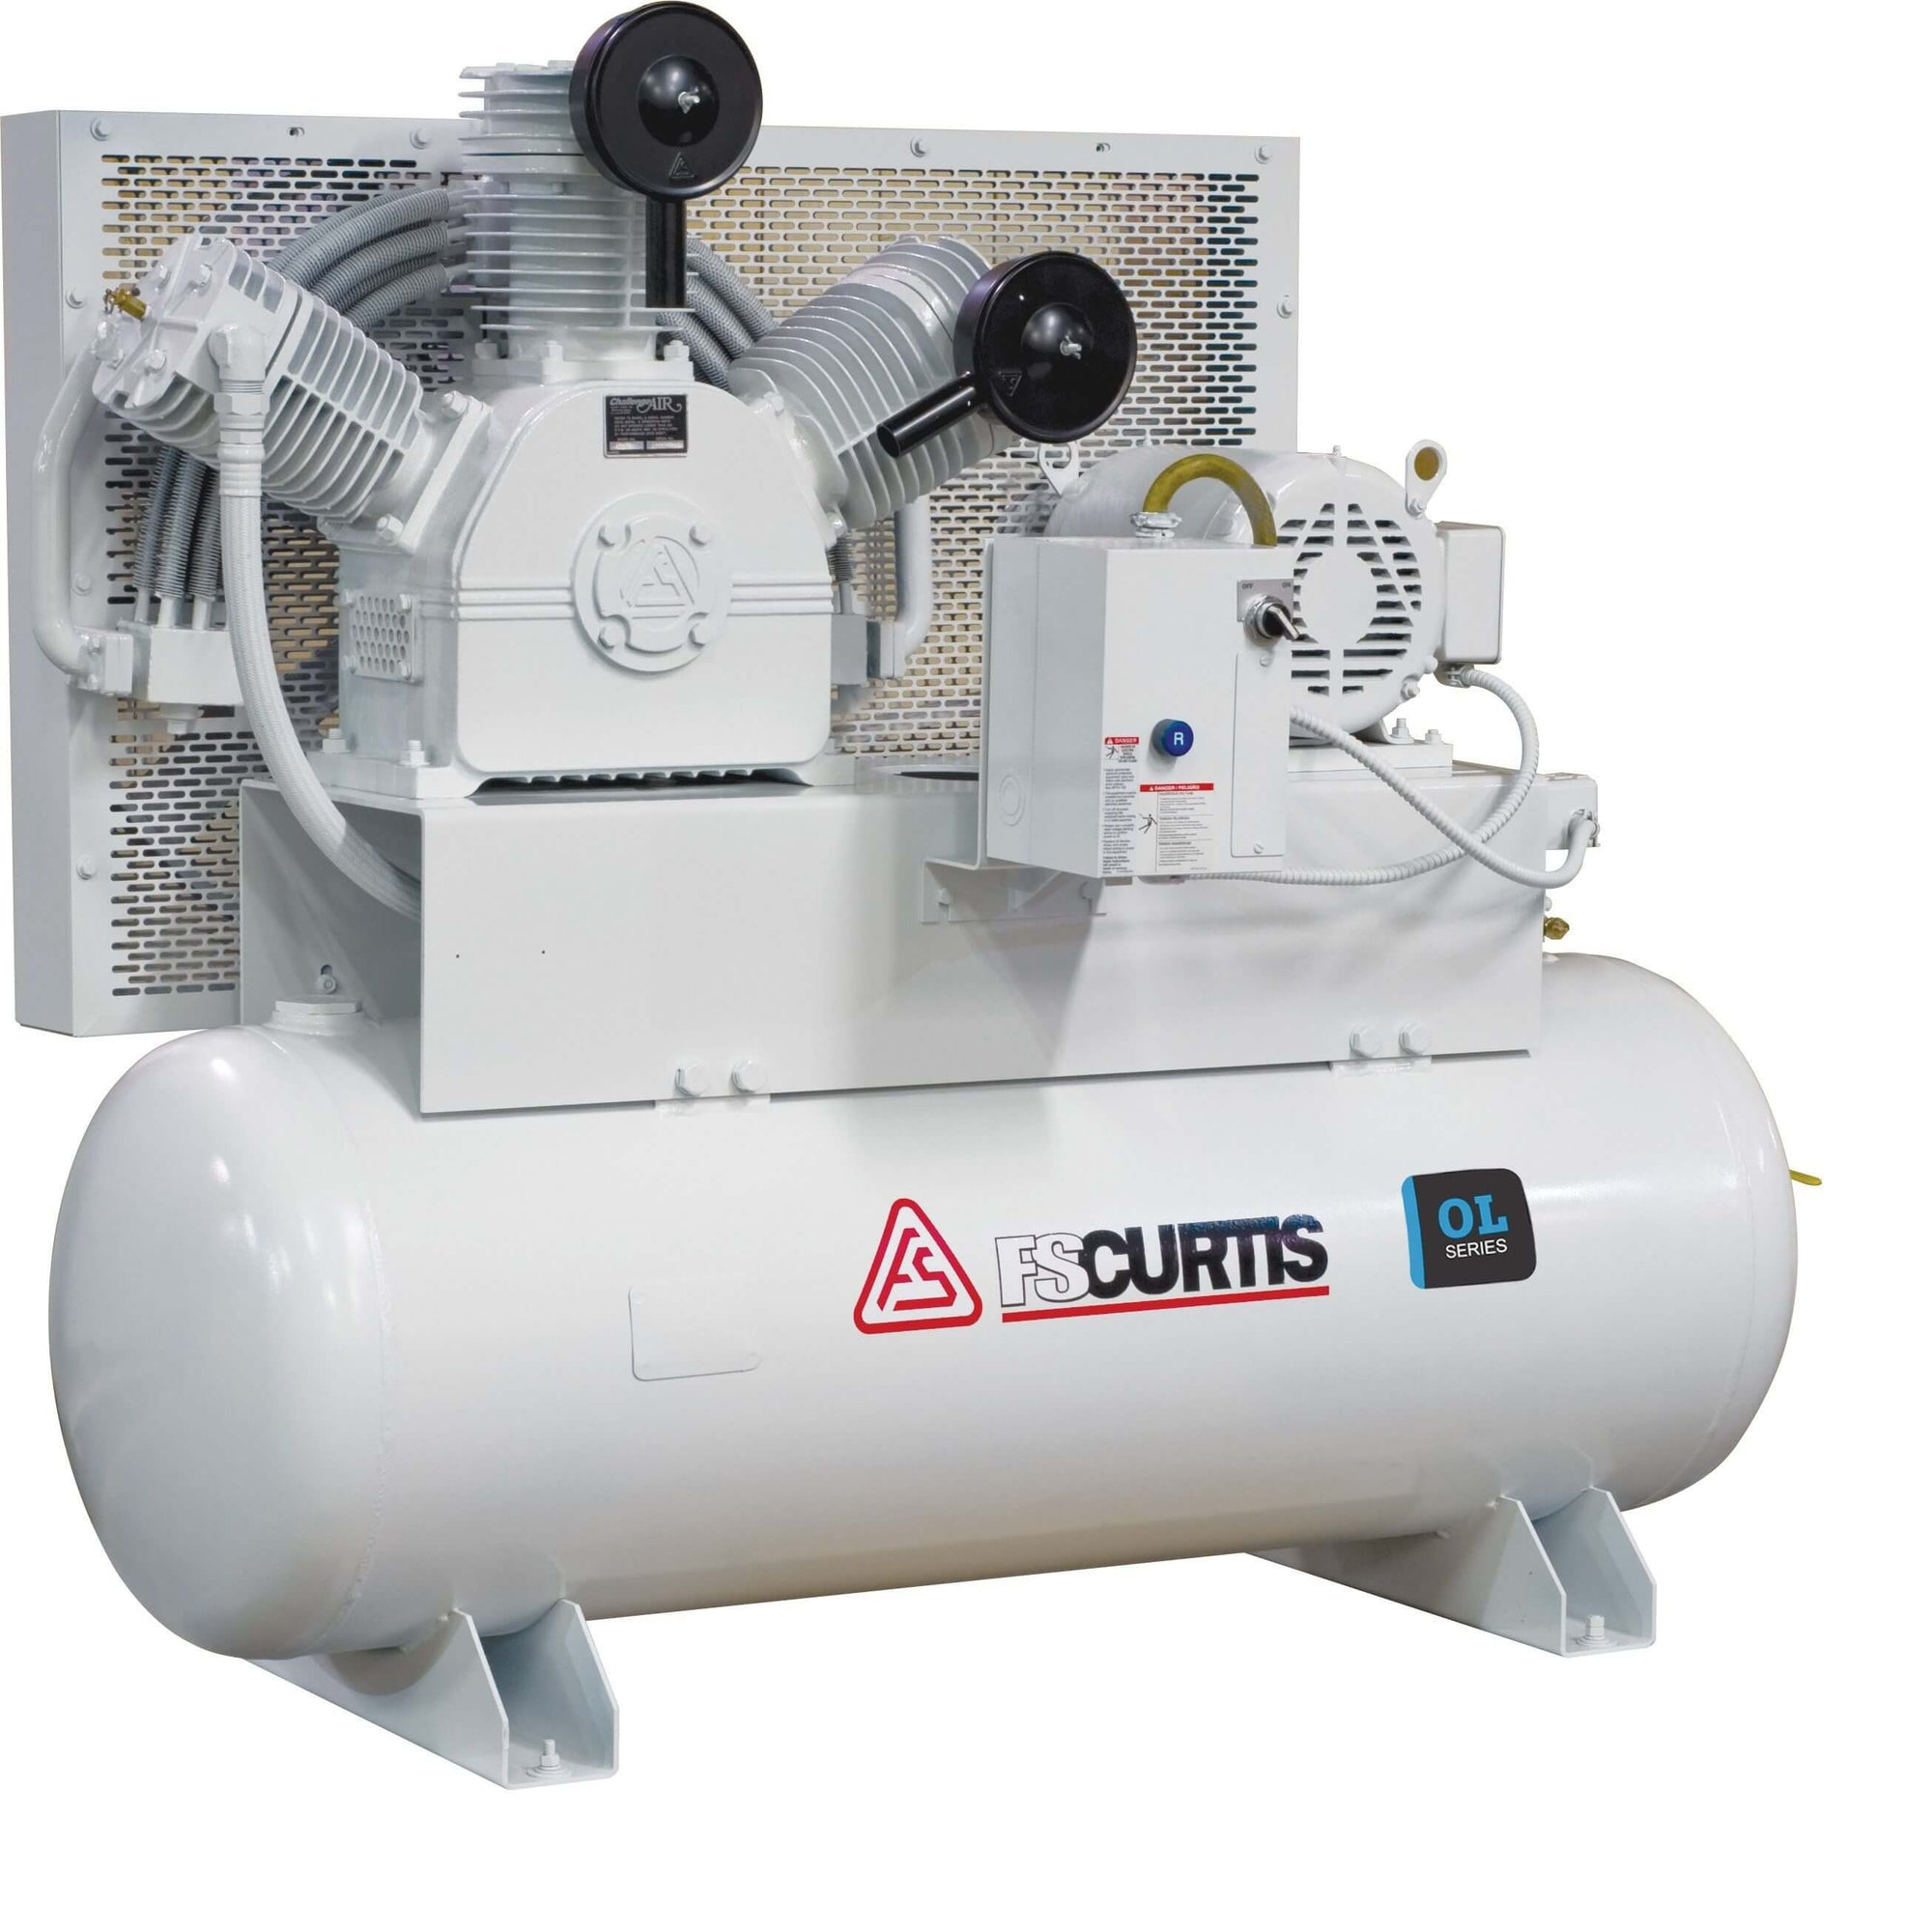 FS Curtis Air Compressor - OL Series